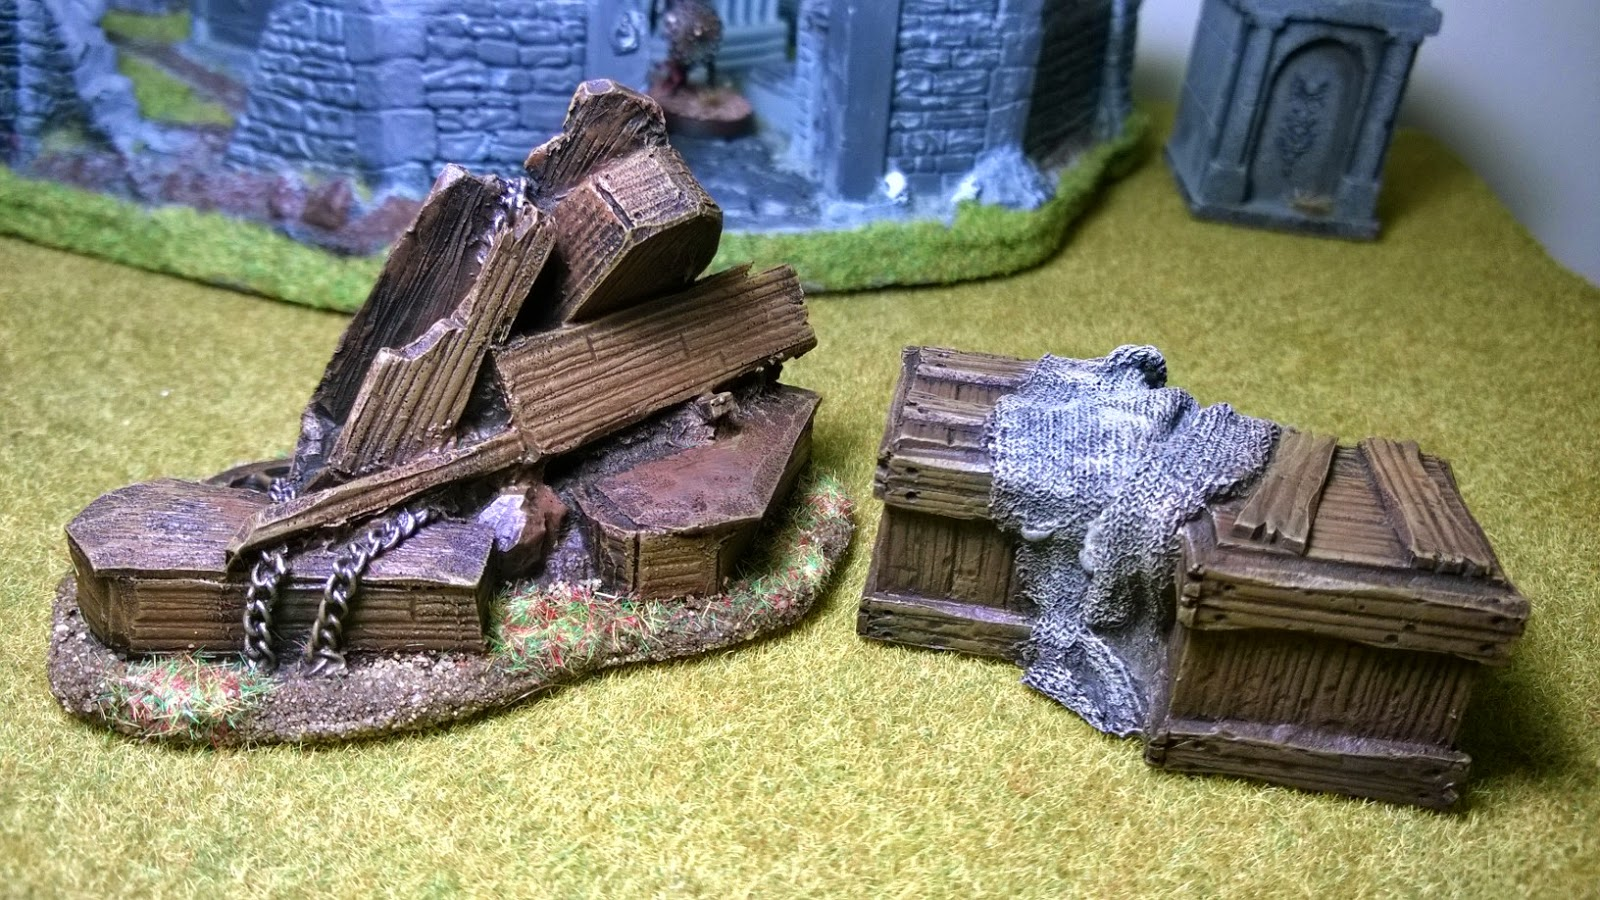 Malifaux undertakers props graveyard terrain scenery gothic horror